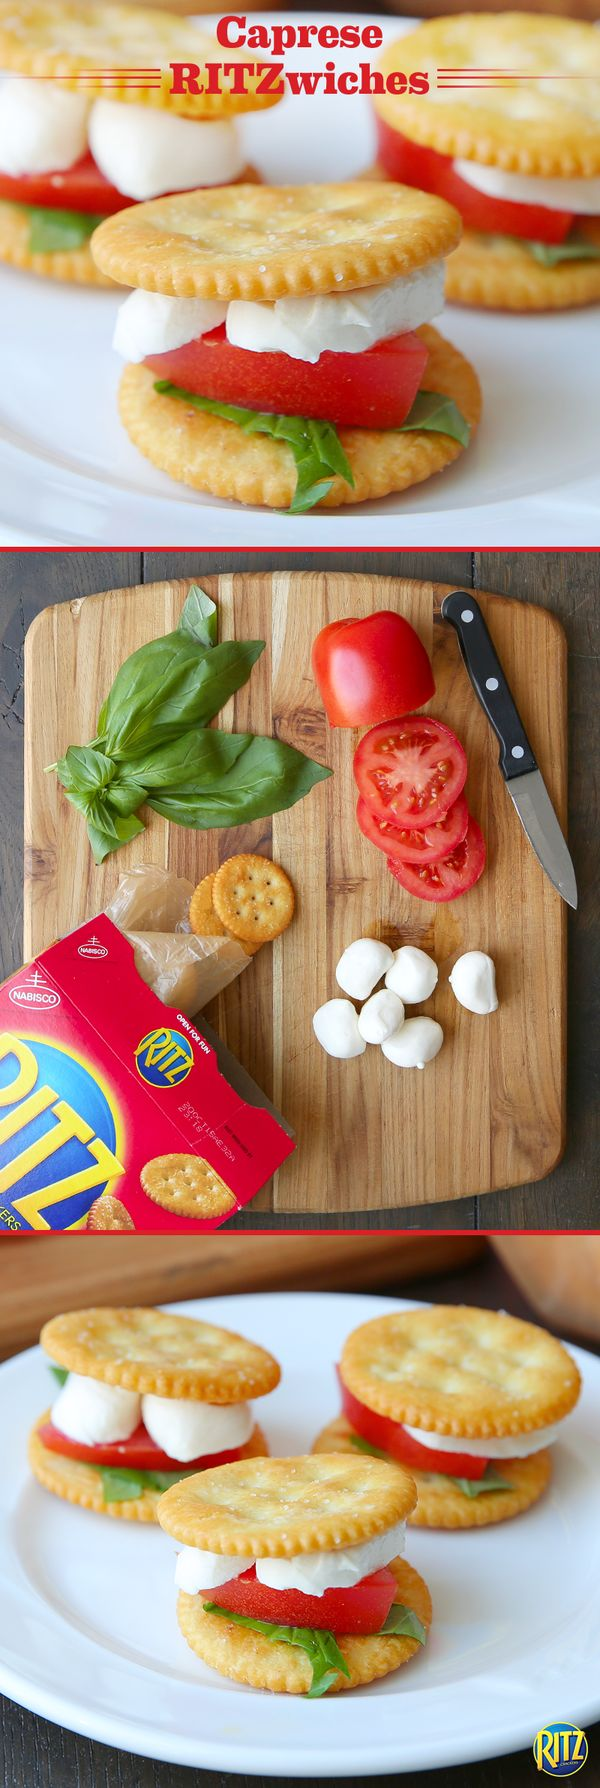 Our RITZ cracker Caprese Bites are a great afternoon snack for a warm summer day! Layer RITZ original crackers with mozzarella cheese and bake until melted. Top with slices of plum tomatoes and a basil leaf. For extra flavor, spread pesto onto the cheese before topping with additional ingredients. It's that easy!